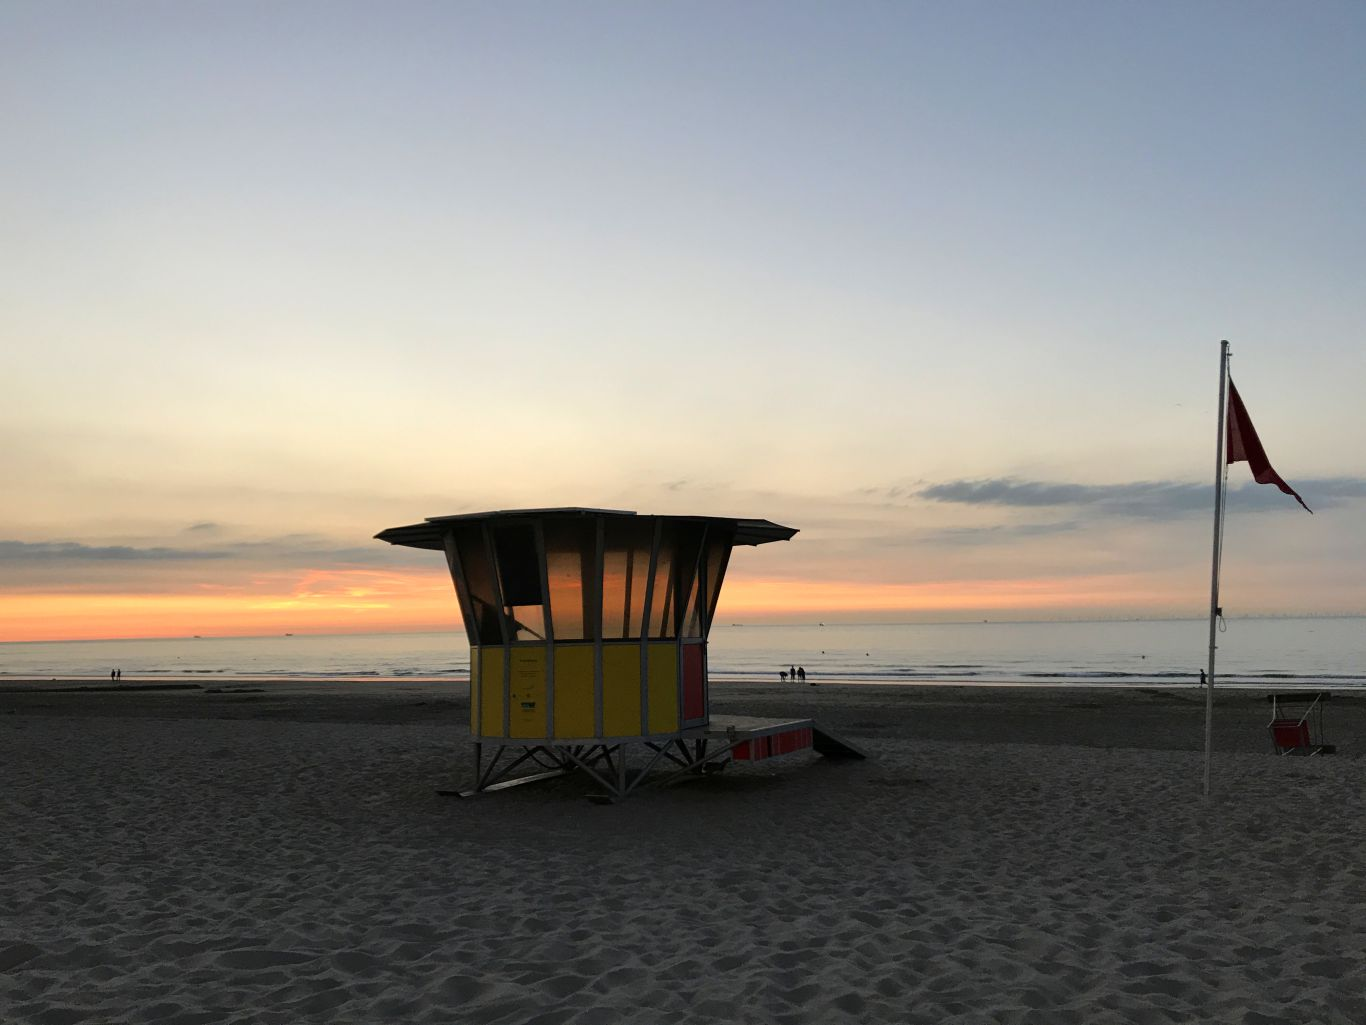 The beach at sunset in Blankenberge